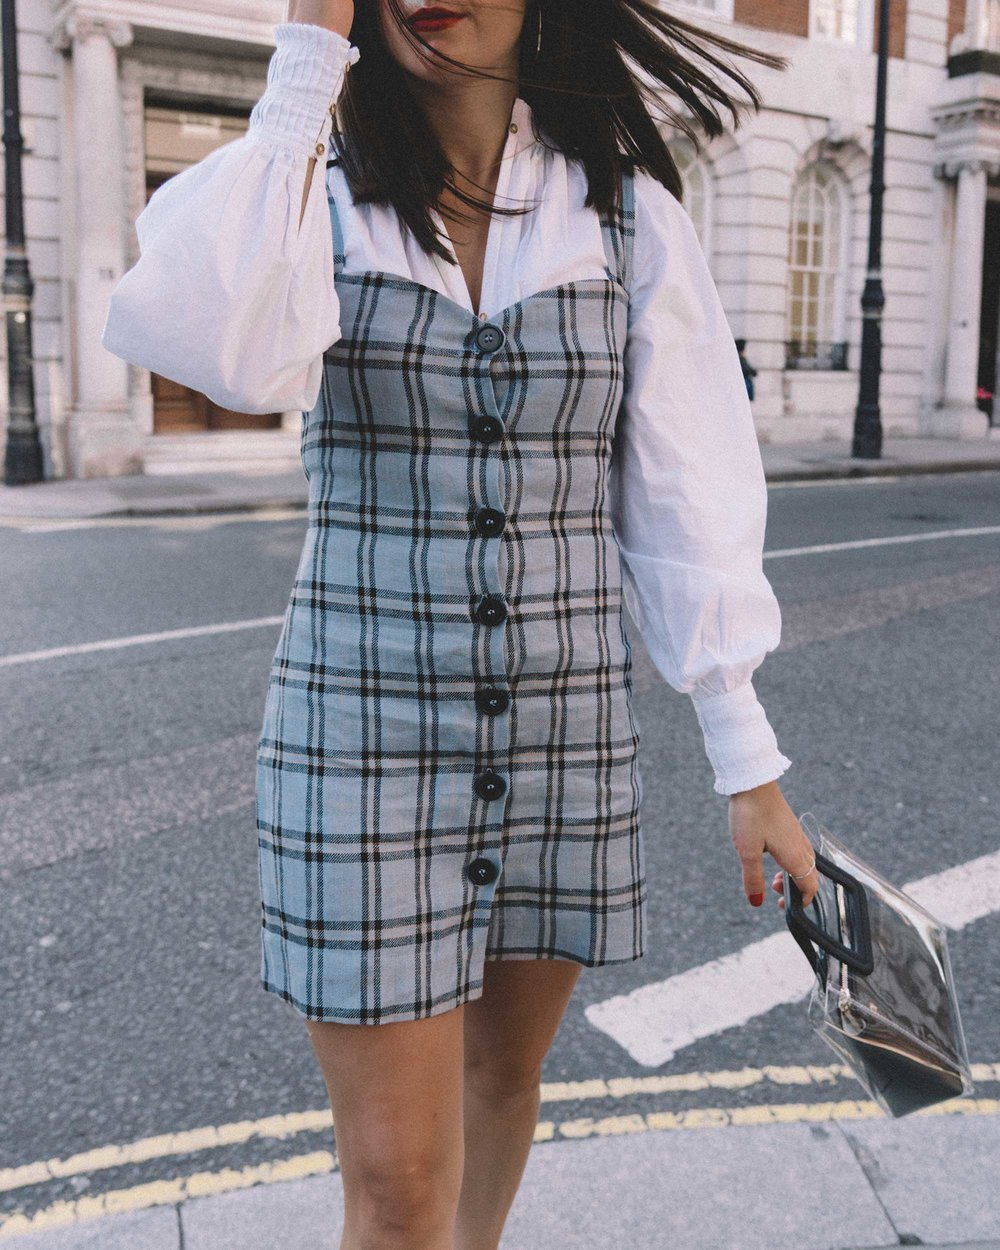 Reformation plaid button front mini dress, Joie Rickelle white blouse Top, London Fashion Week Outfit, Fall Plaid Dress, Fall Plaid Outfit7.jpg